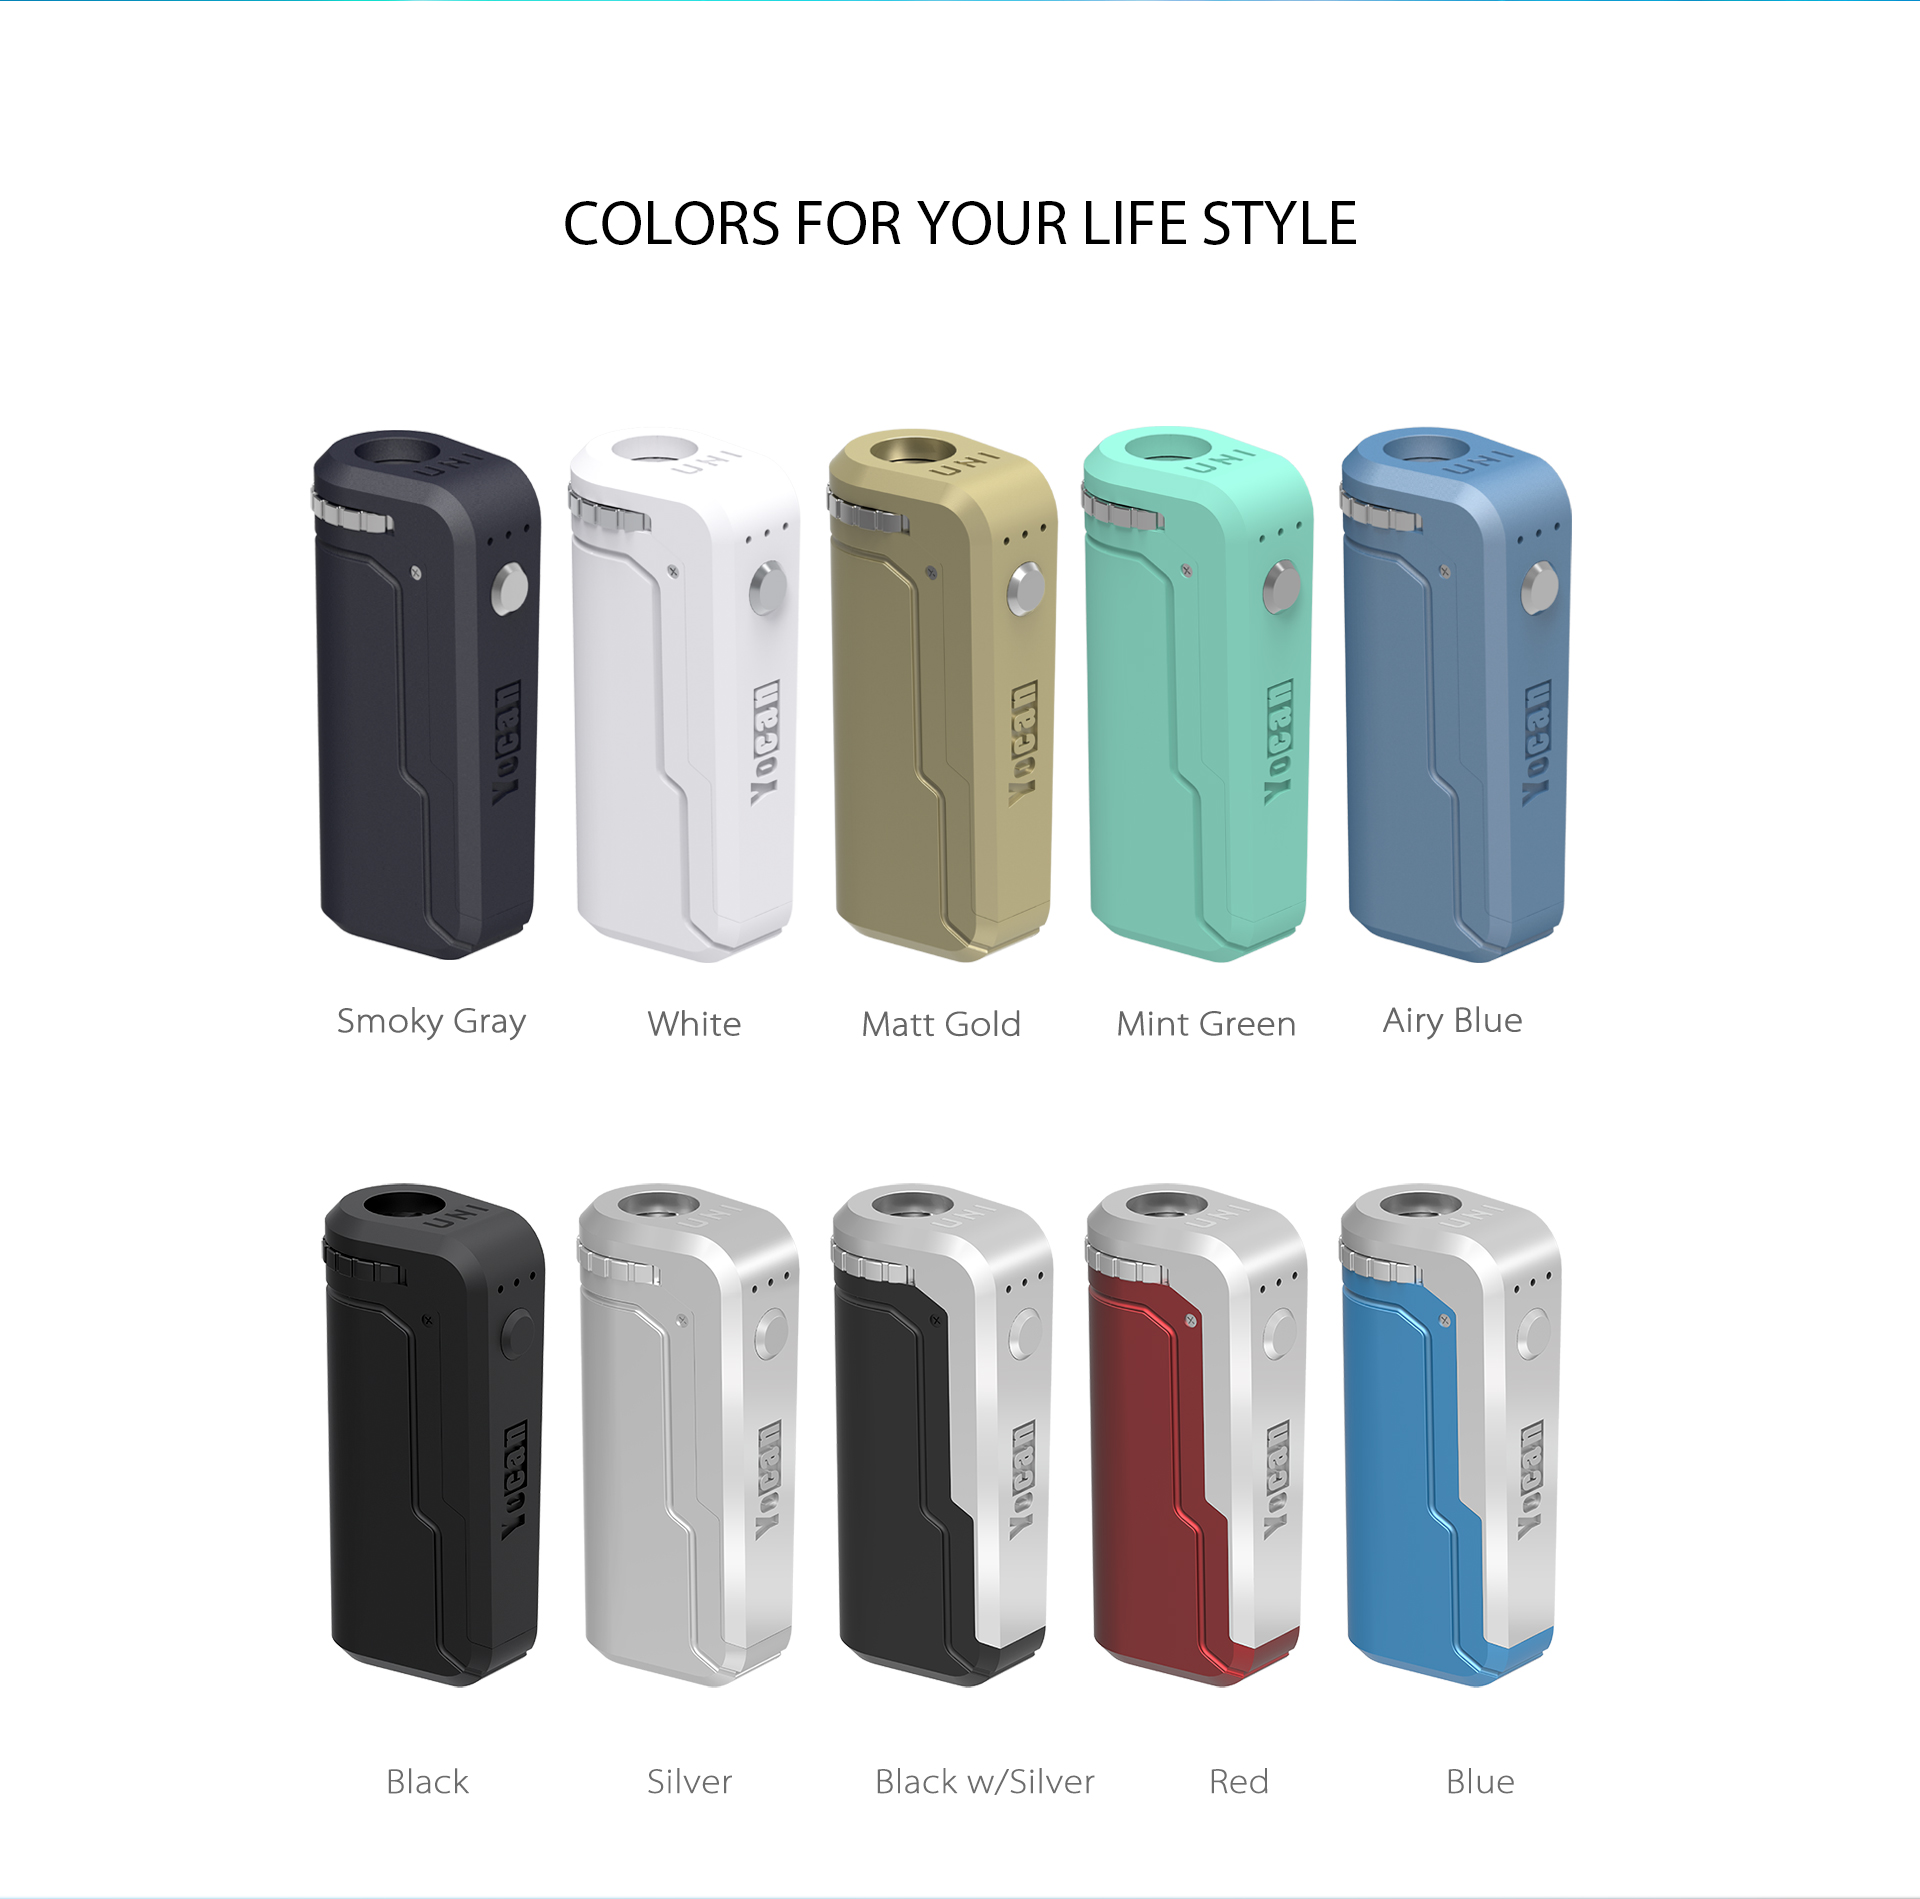 Yocan UNI box mod 10 colors for your life style